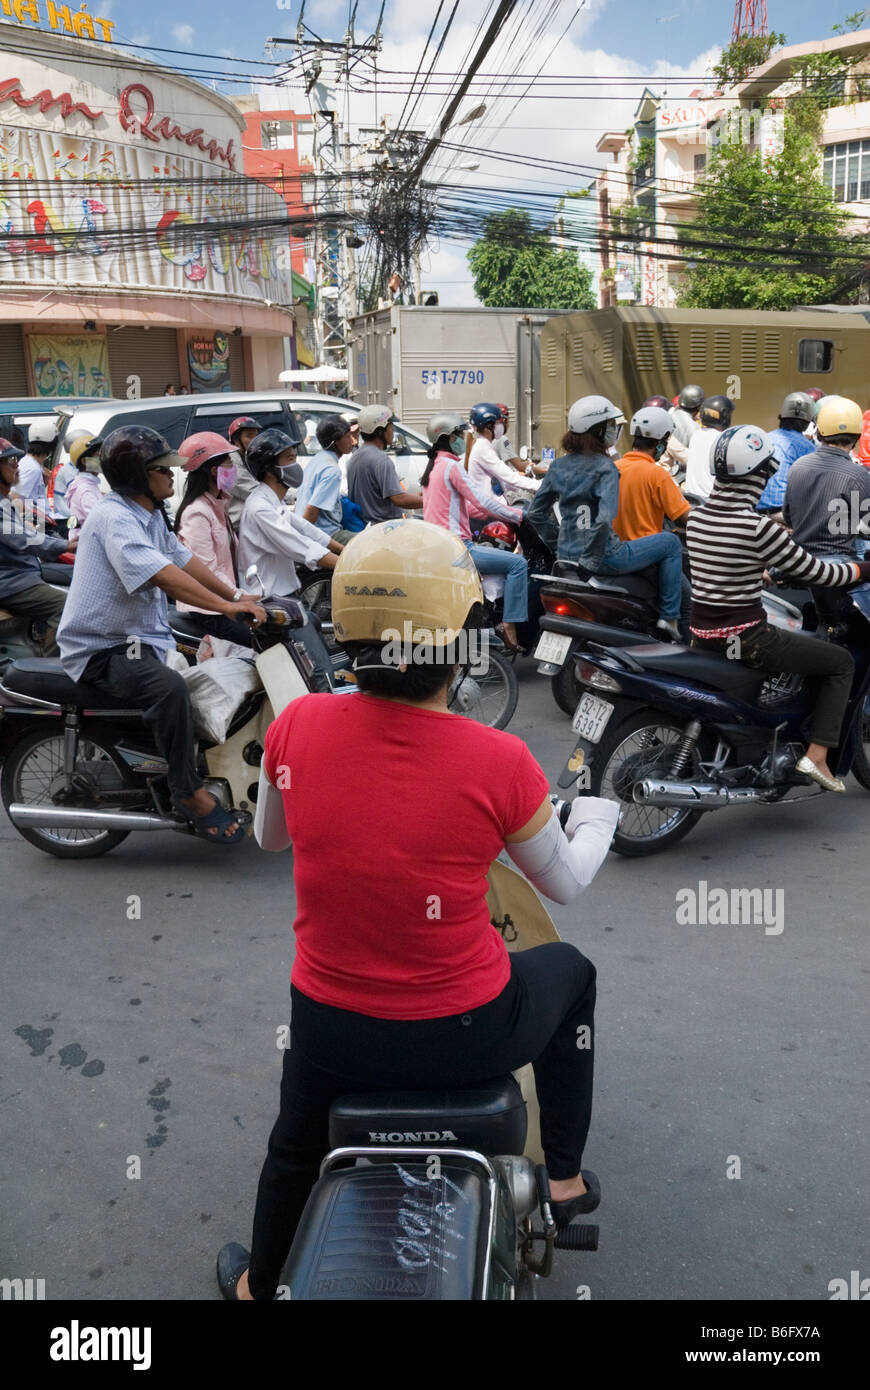 Waiting for a gap in traffic, a typical Vietnamese street scene in Ho Chi Minh City, Vietnam - Stock Image